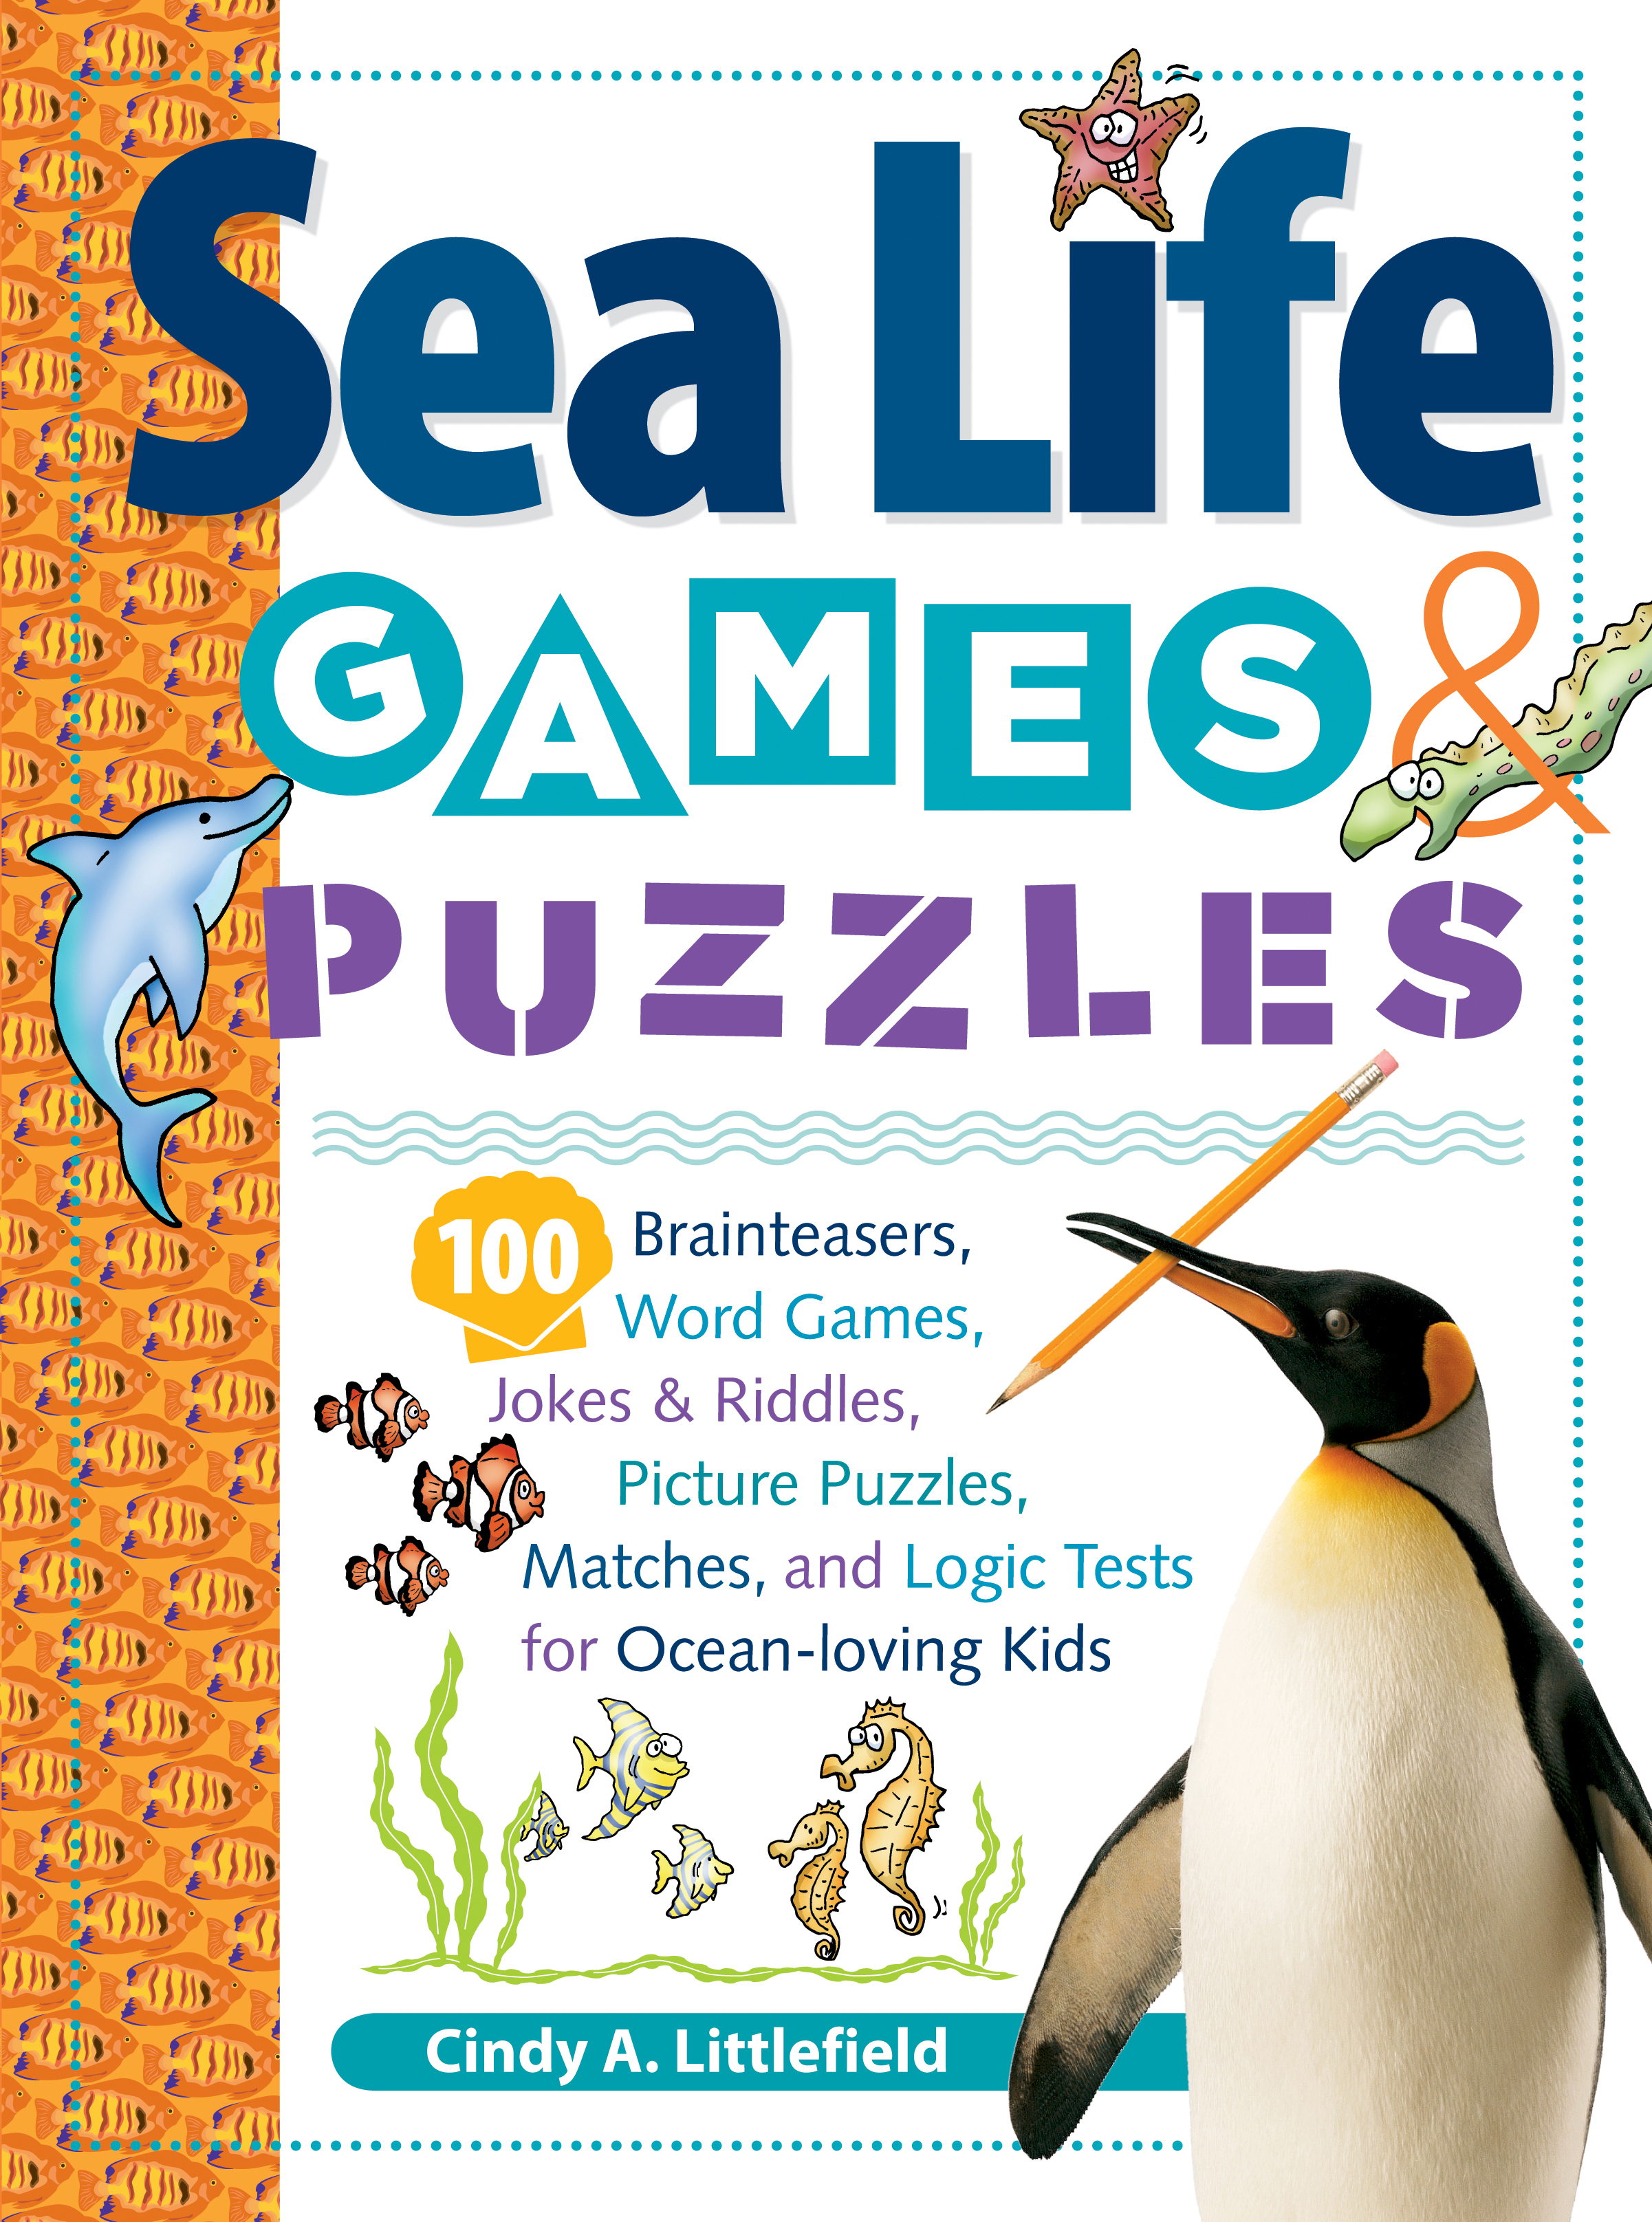 Sea Life Games & Puzzles  - Cindy A. Littlefield